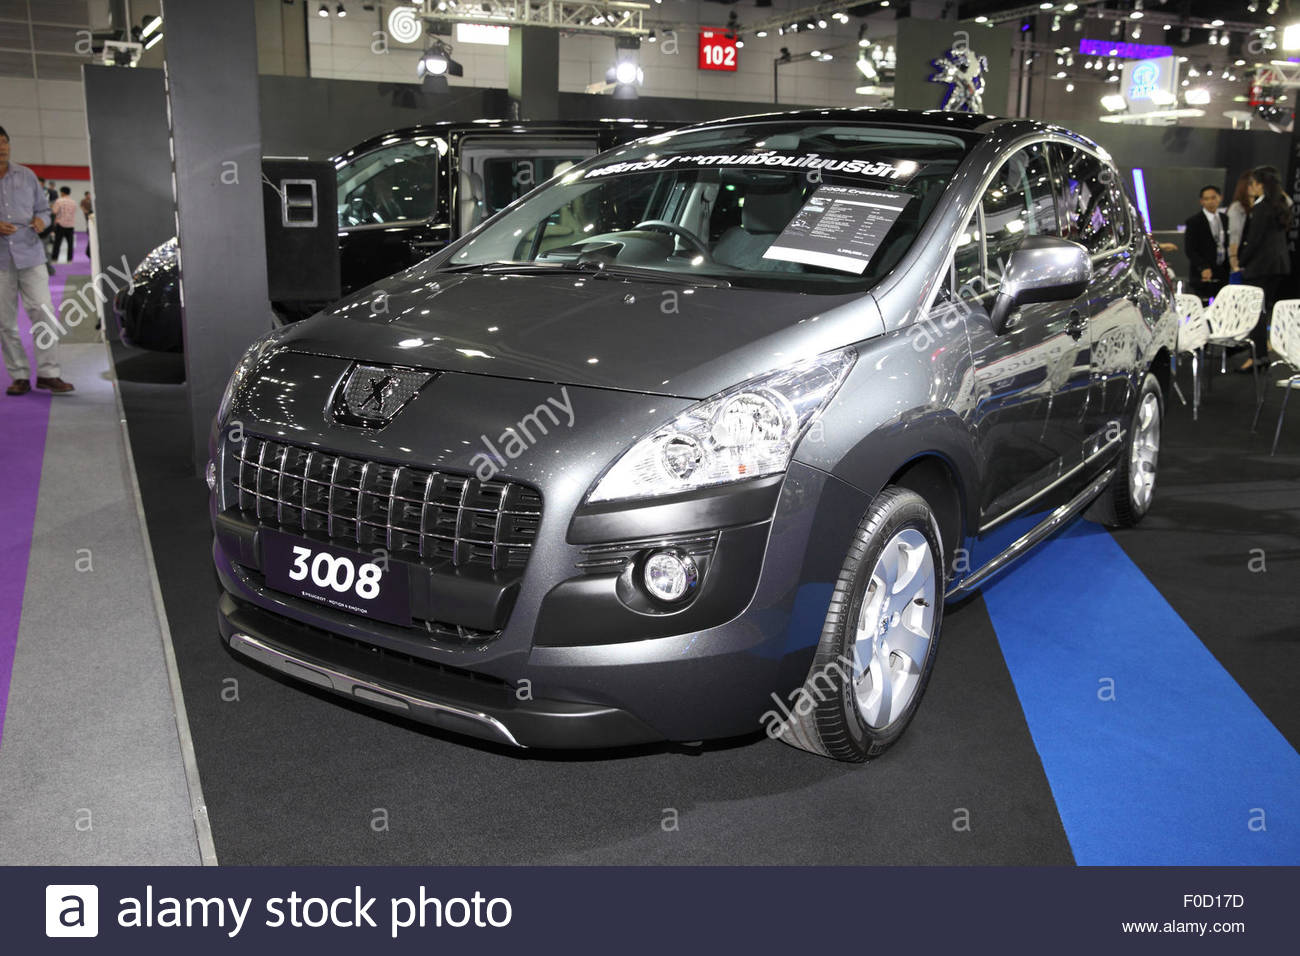 3008 stock photos 3008 stock images alamy for Garage peugeot paris 17